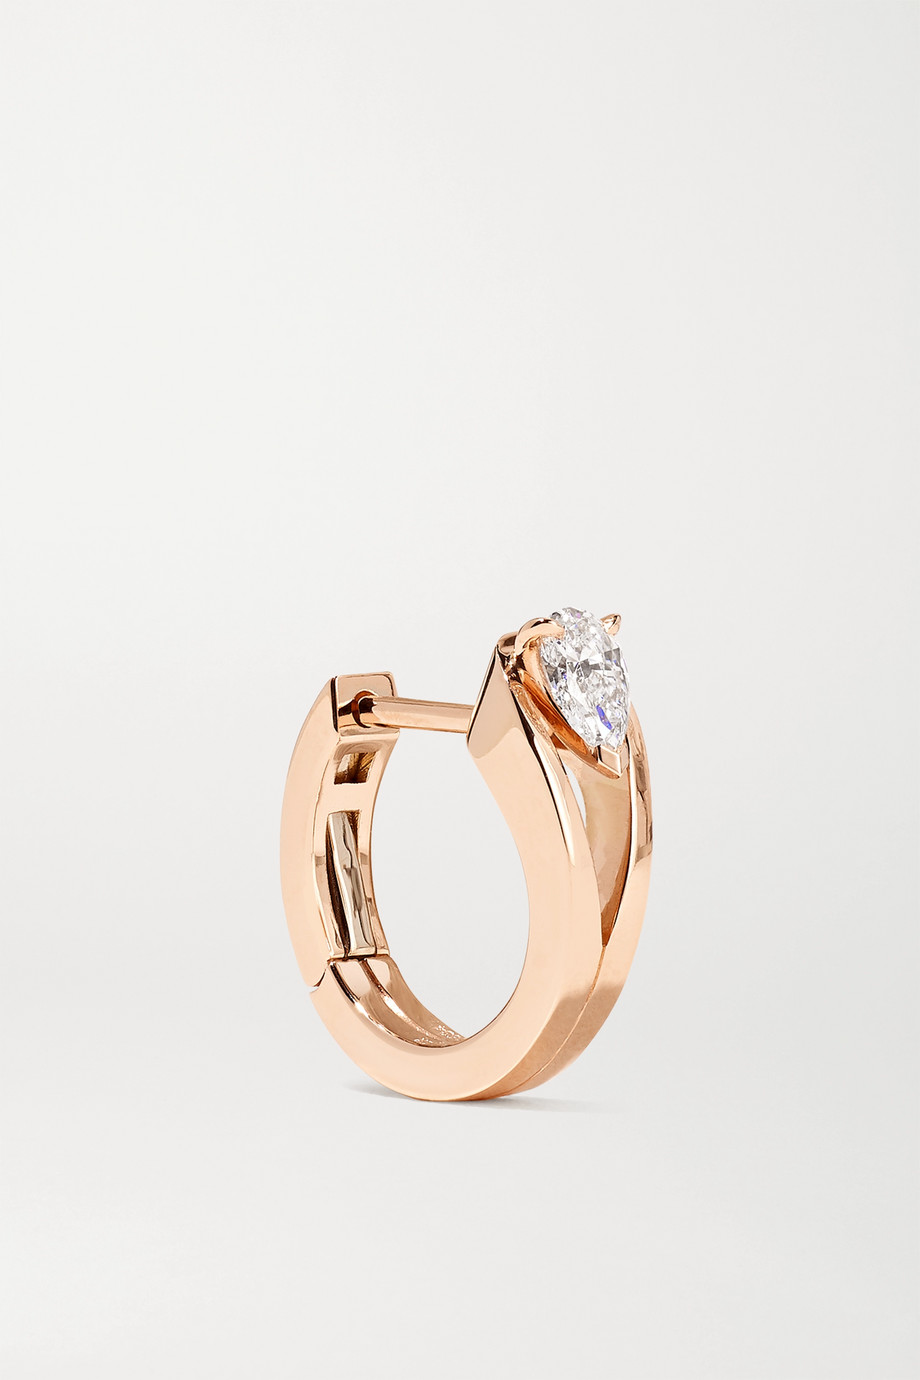 Repossi Serti Inversé 18-karat rose gold diamond earring